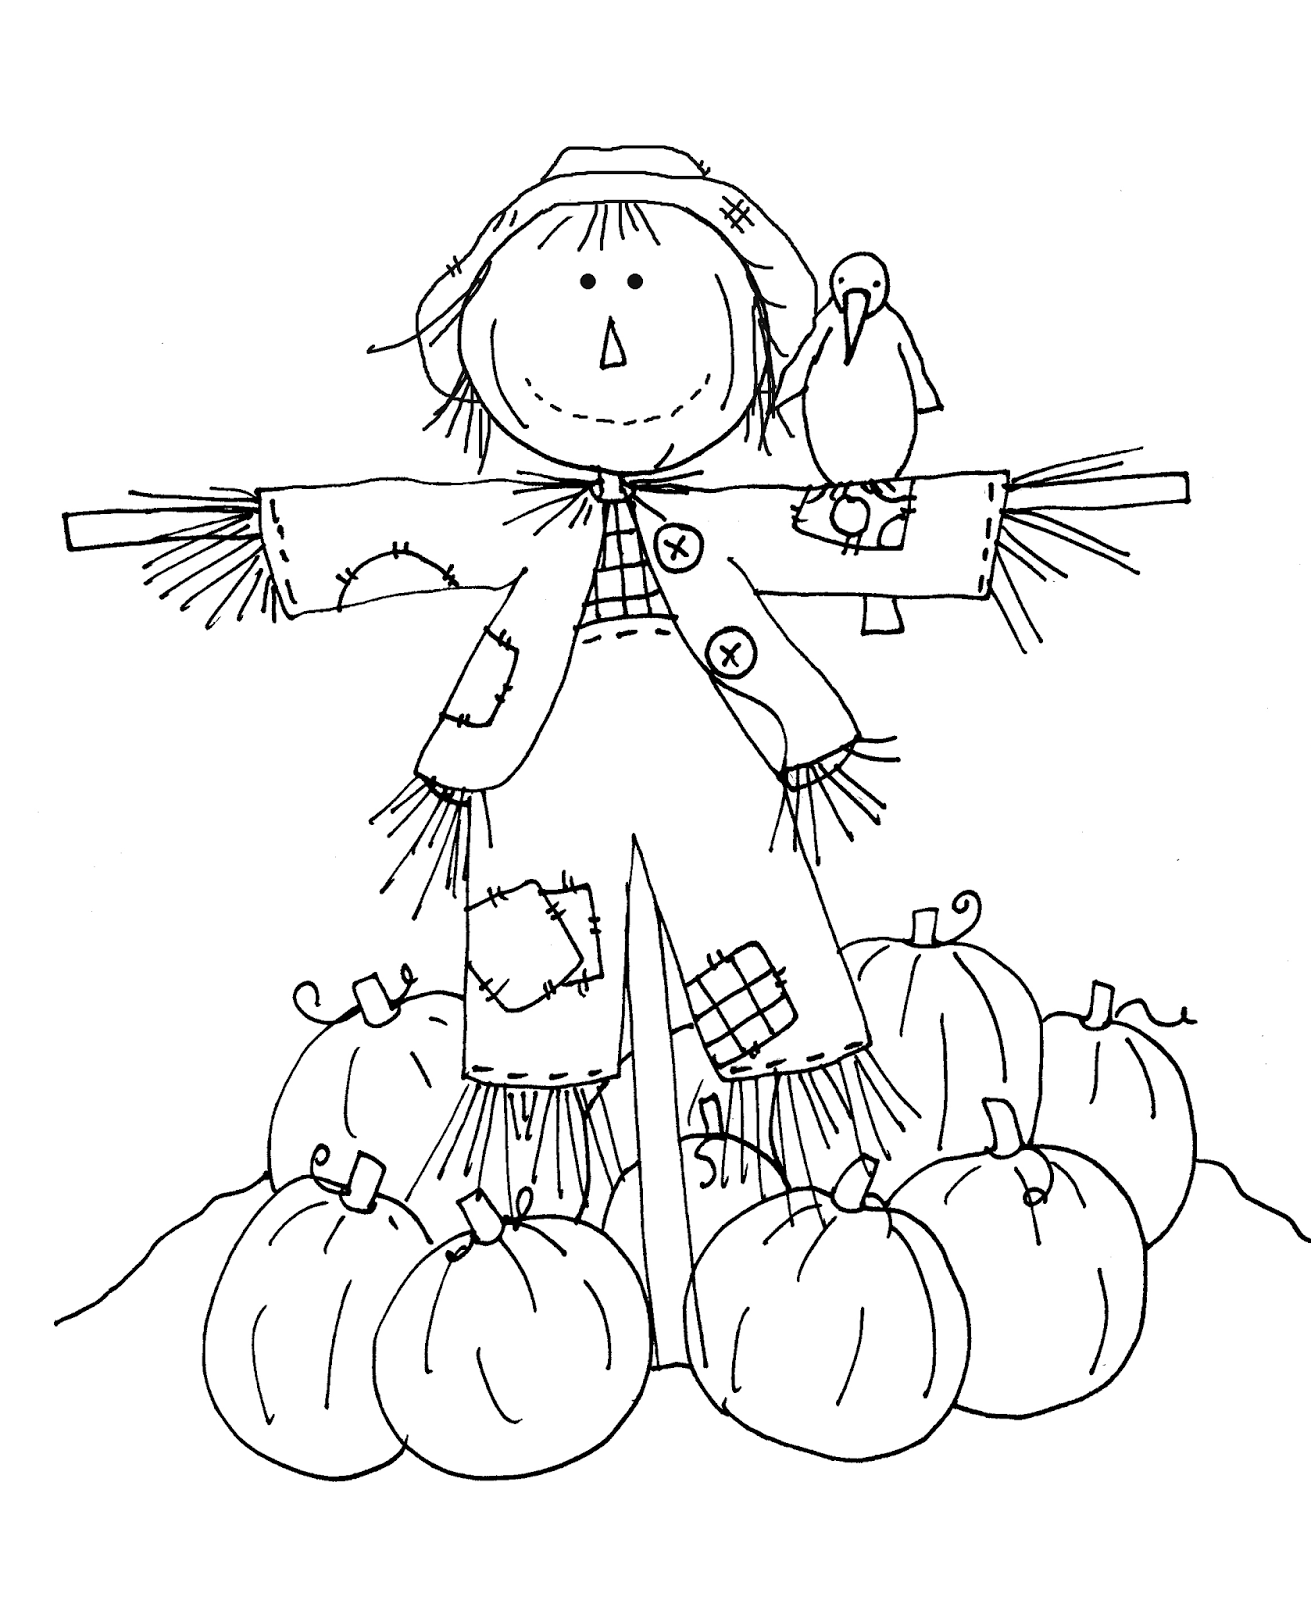 scarecrow coloring sheet free dearie dolls digi stamps friendly scarecrow part two scarecrow coloring sheet